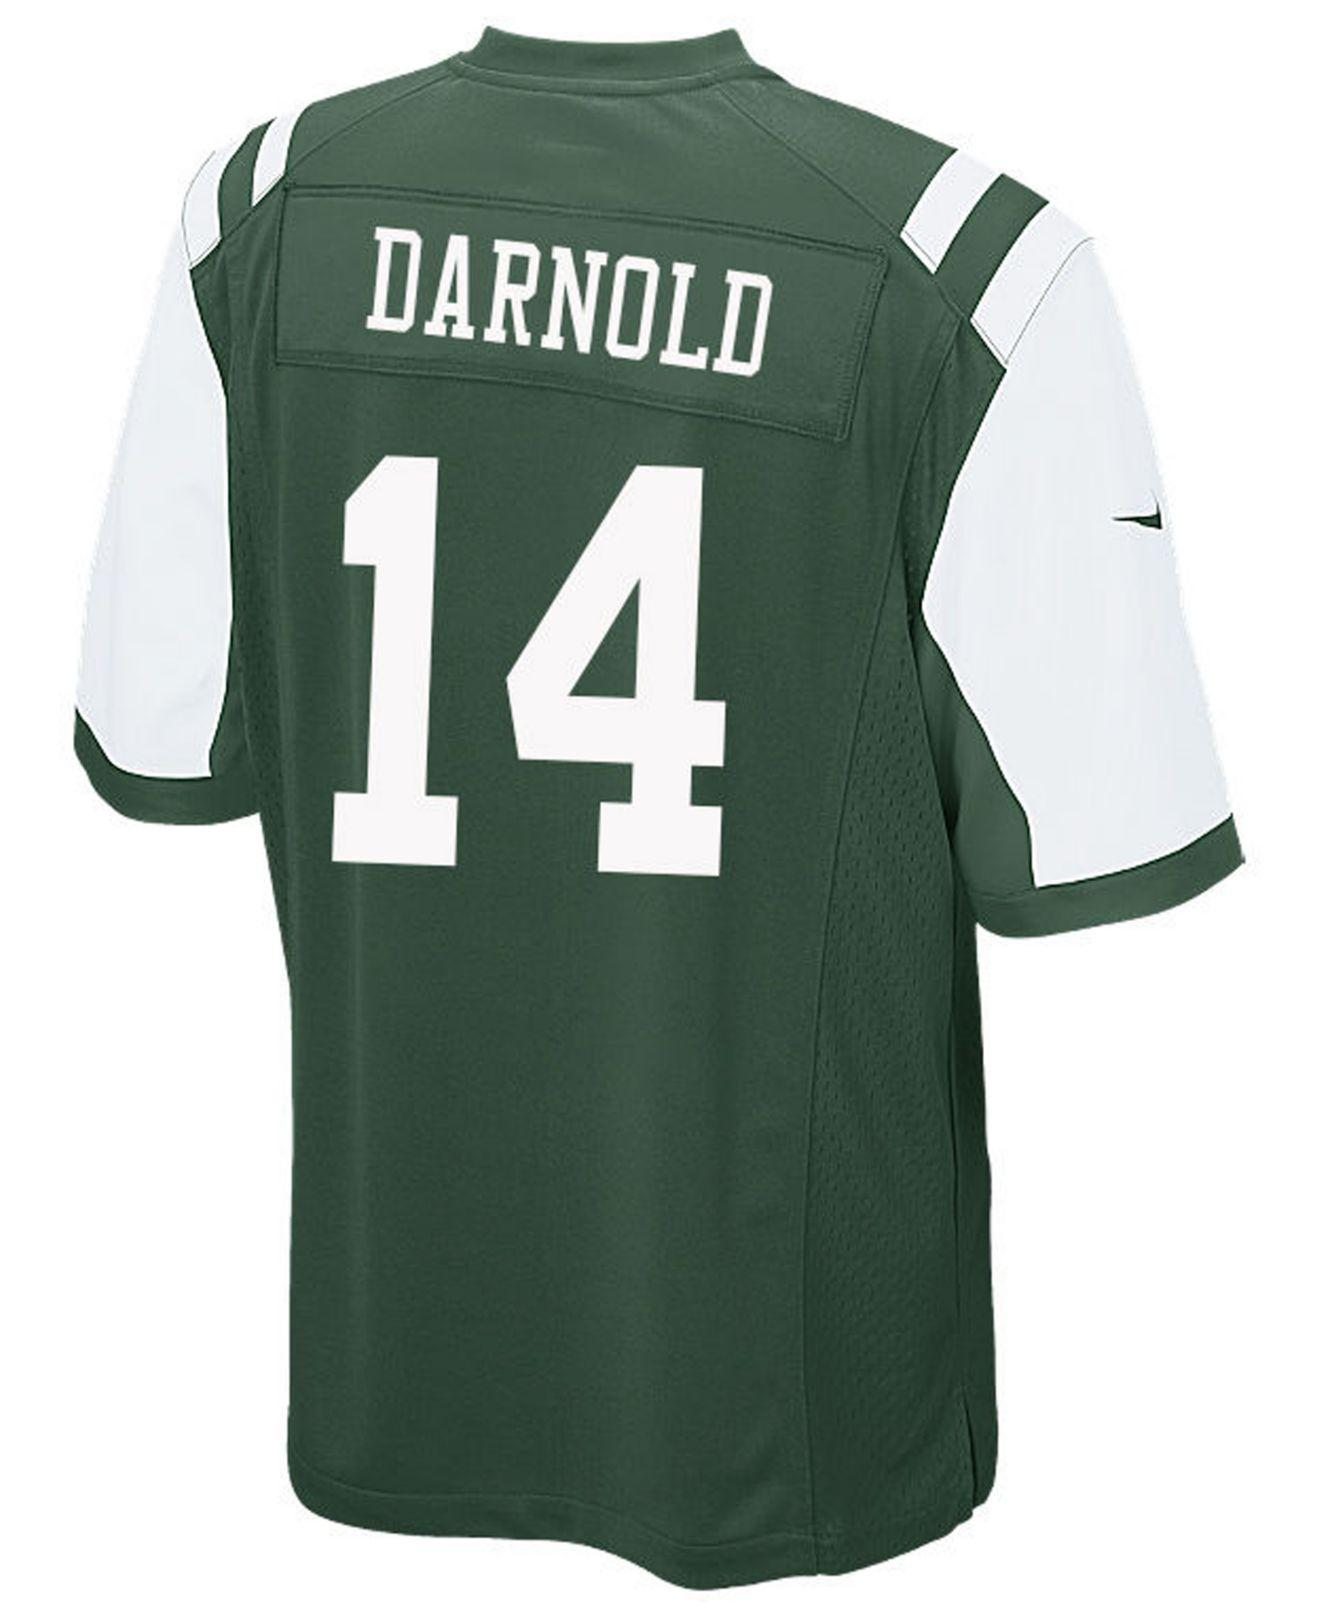 Lyst - Nike Sam Darnold New York Jets Game Jersey in Green for Men fa3de3986